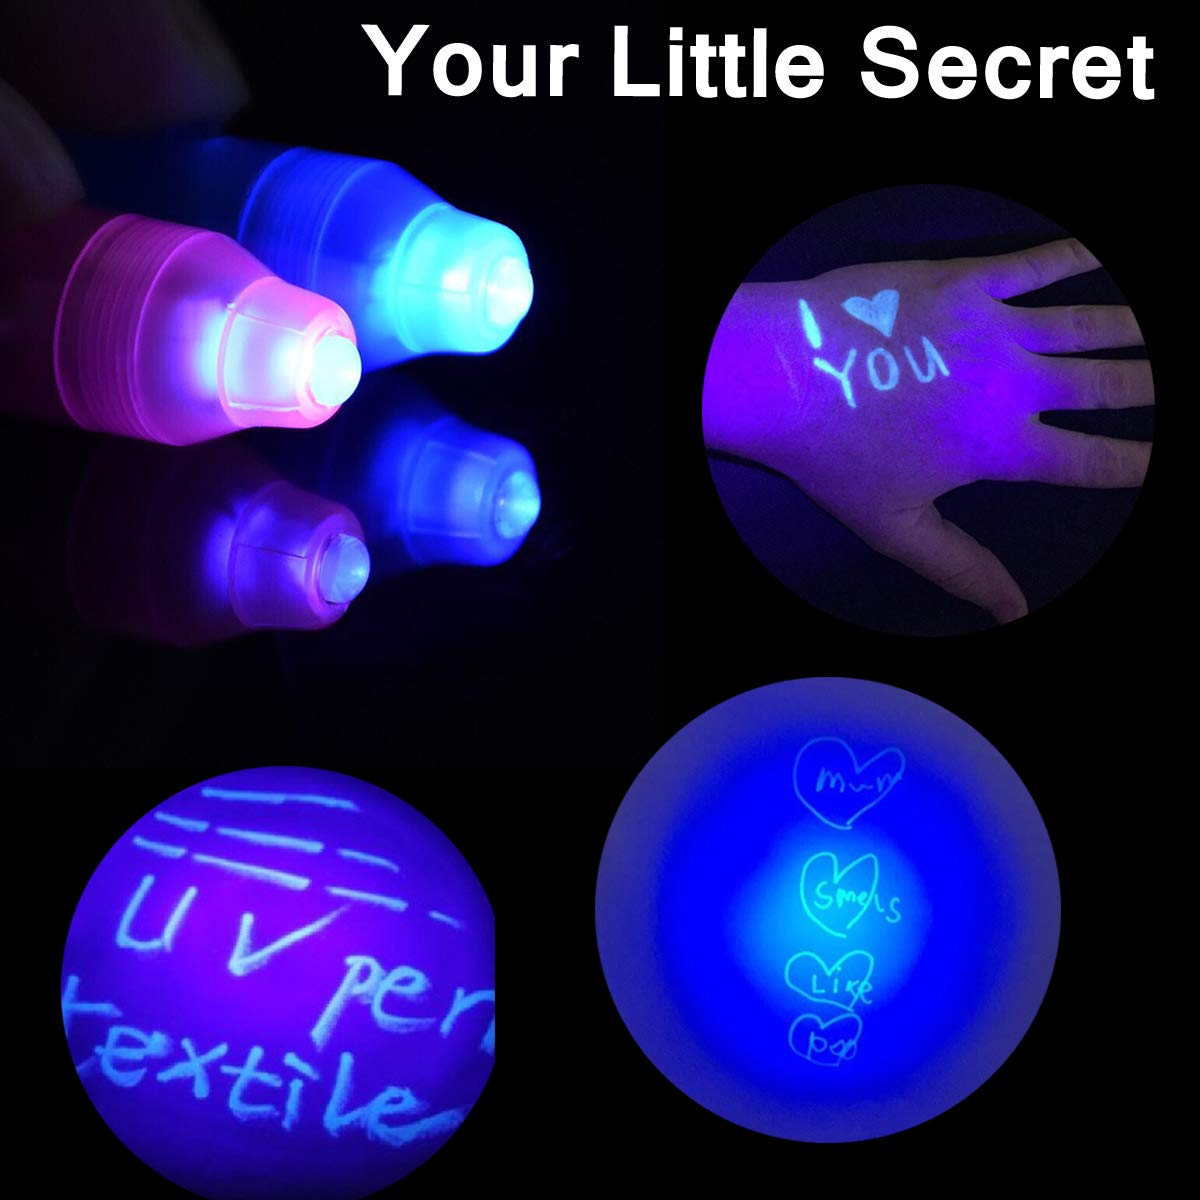 Joyjam Toys for 3-8 Year Old Boys Girls Invisible Ink Pen Spy Gear for Kids Magic Pen with UV Light Party Favors for Kids Christmas Novelty Gifts Stocking Stuffers (12 Pack) by Joyjam (Image #5)